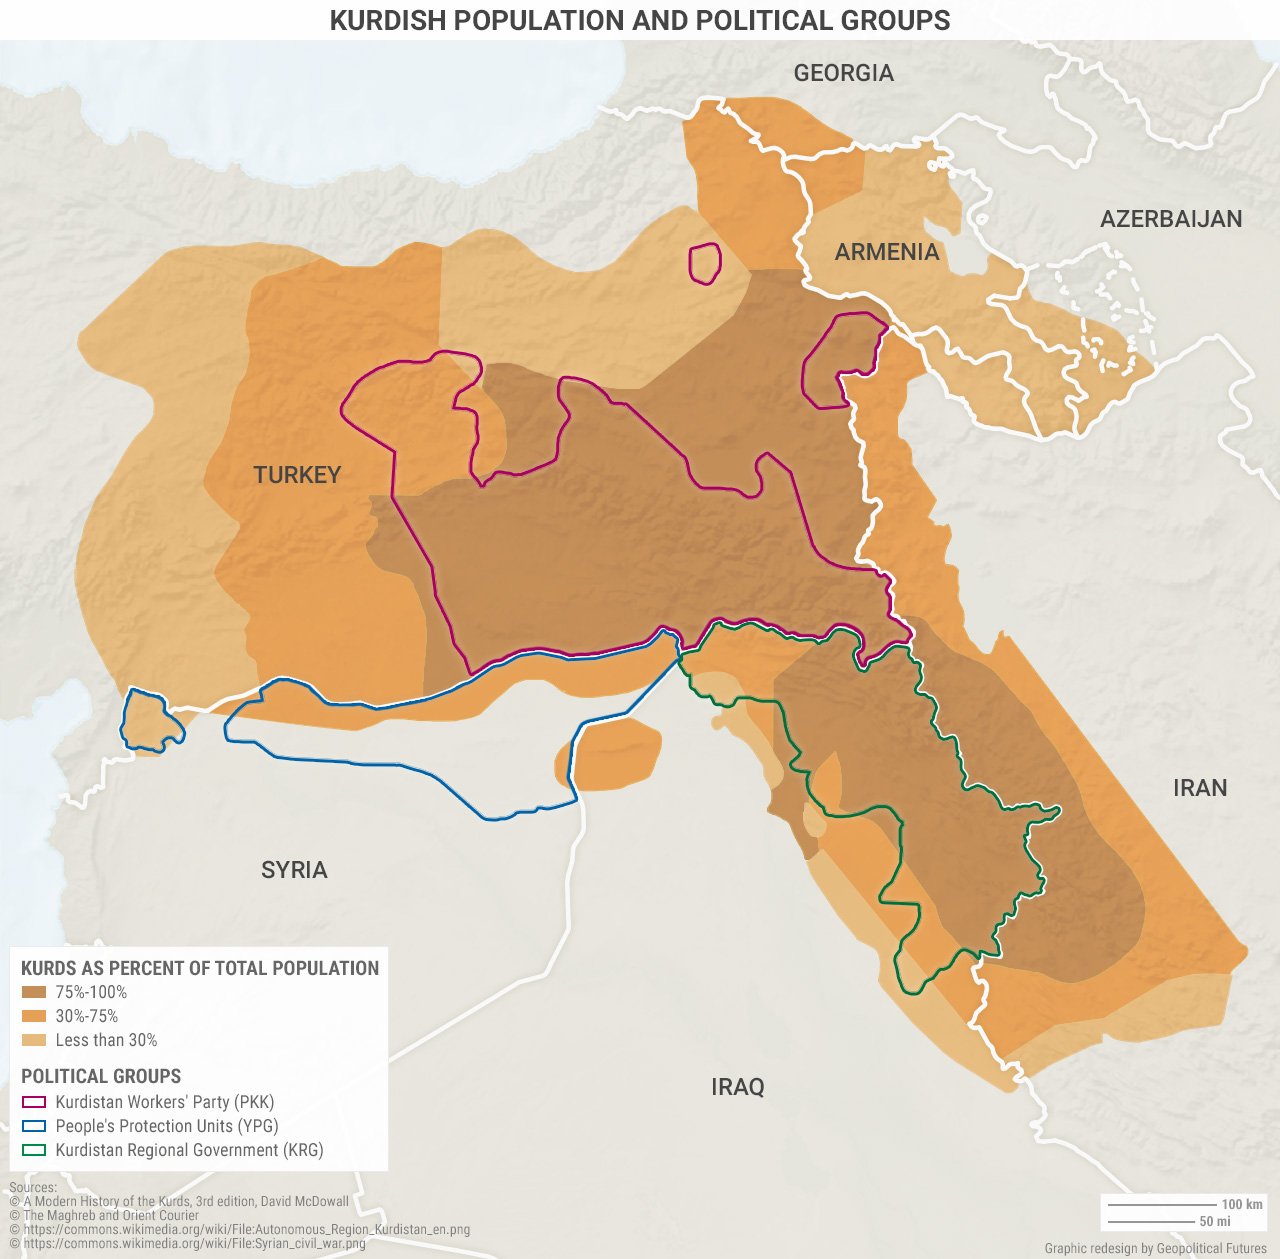 Kurdish Population and Political Groups